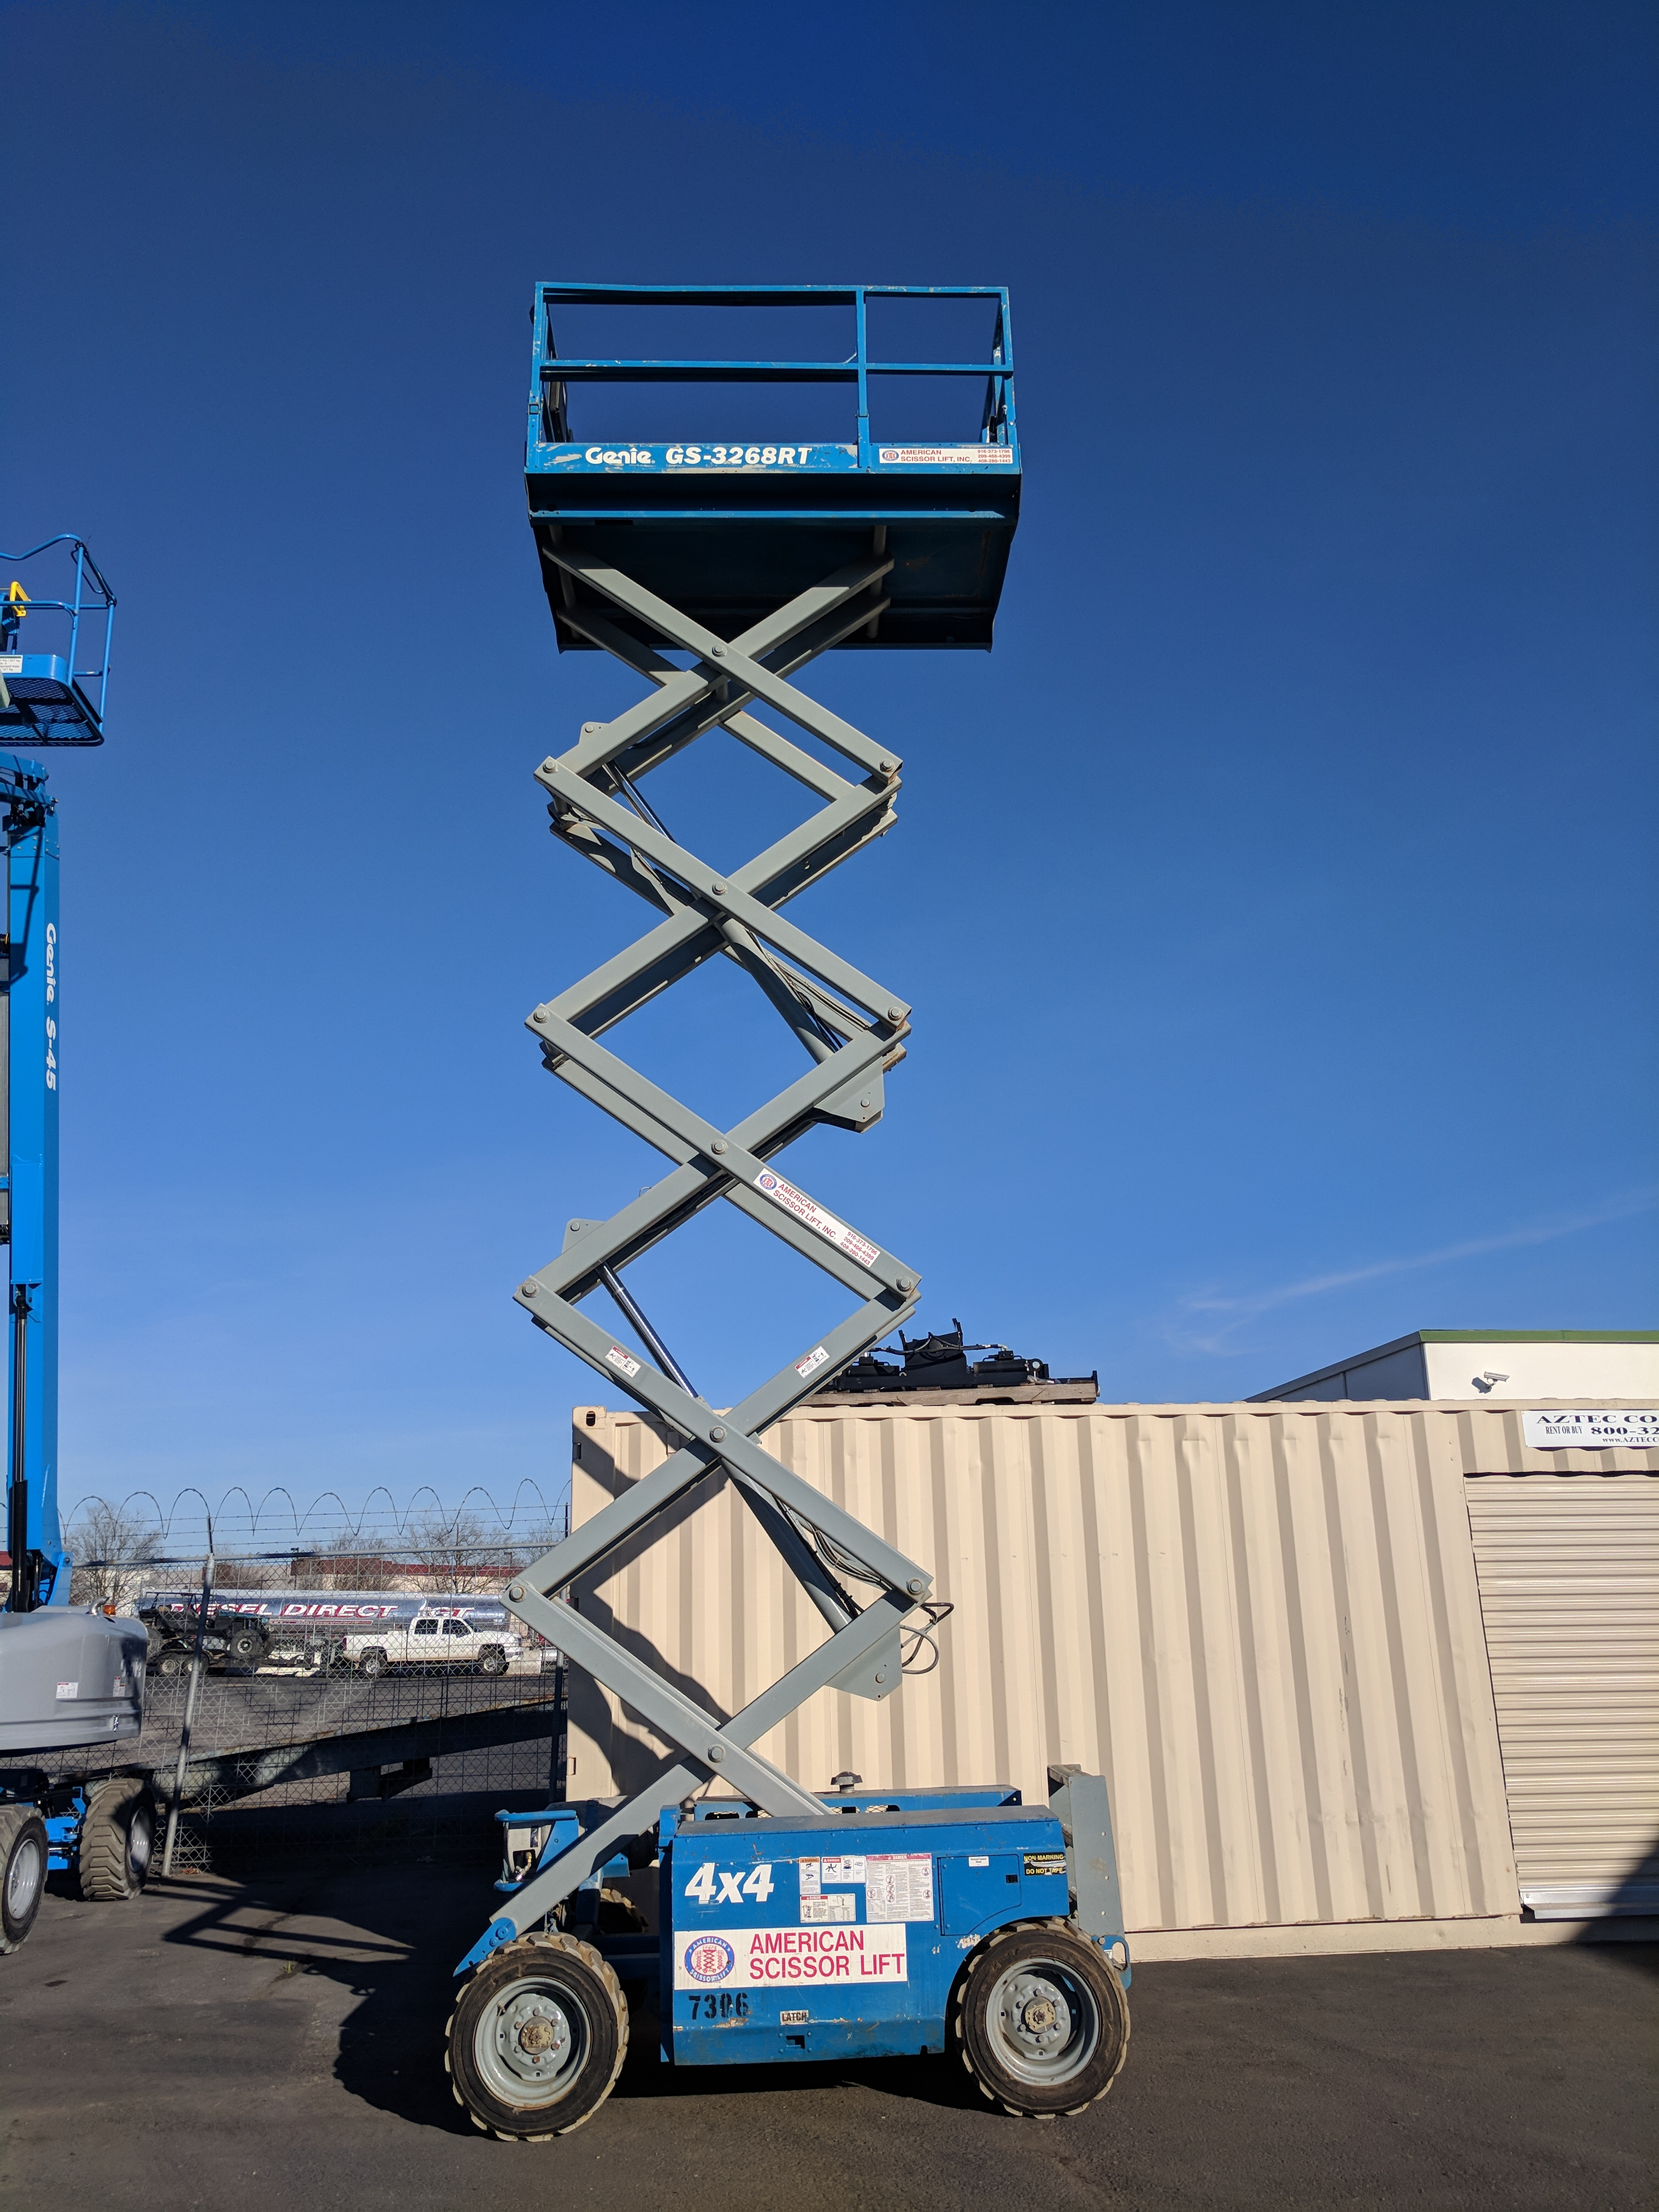 32 ft scissor lift - 2005 Genie Model Gs 3268 Rt 4wd As Is 12 950 Painted 14 950